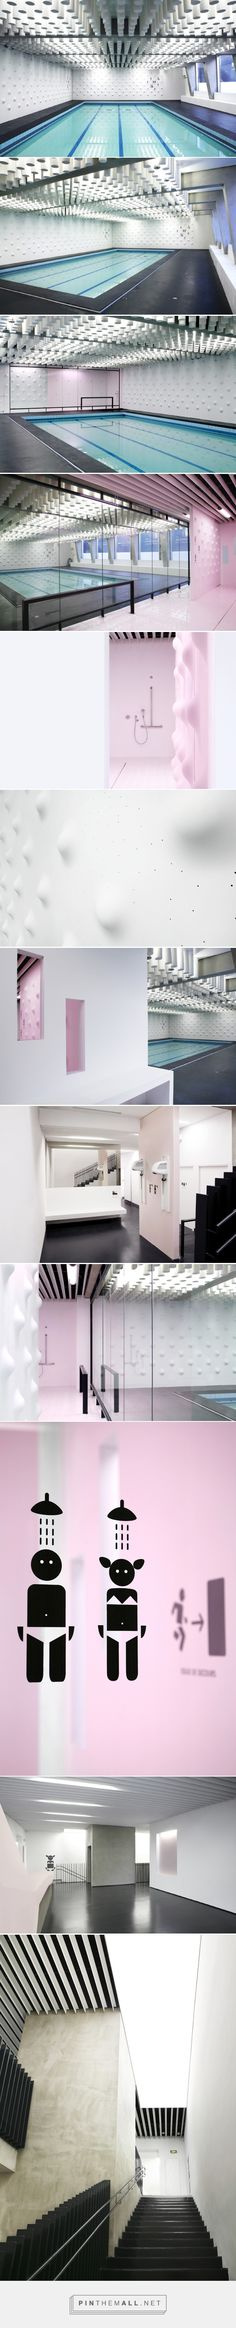 yoonseux forms an immersive experience in atlas sports center - created via http://pinthemall.net